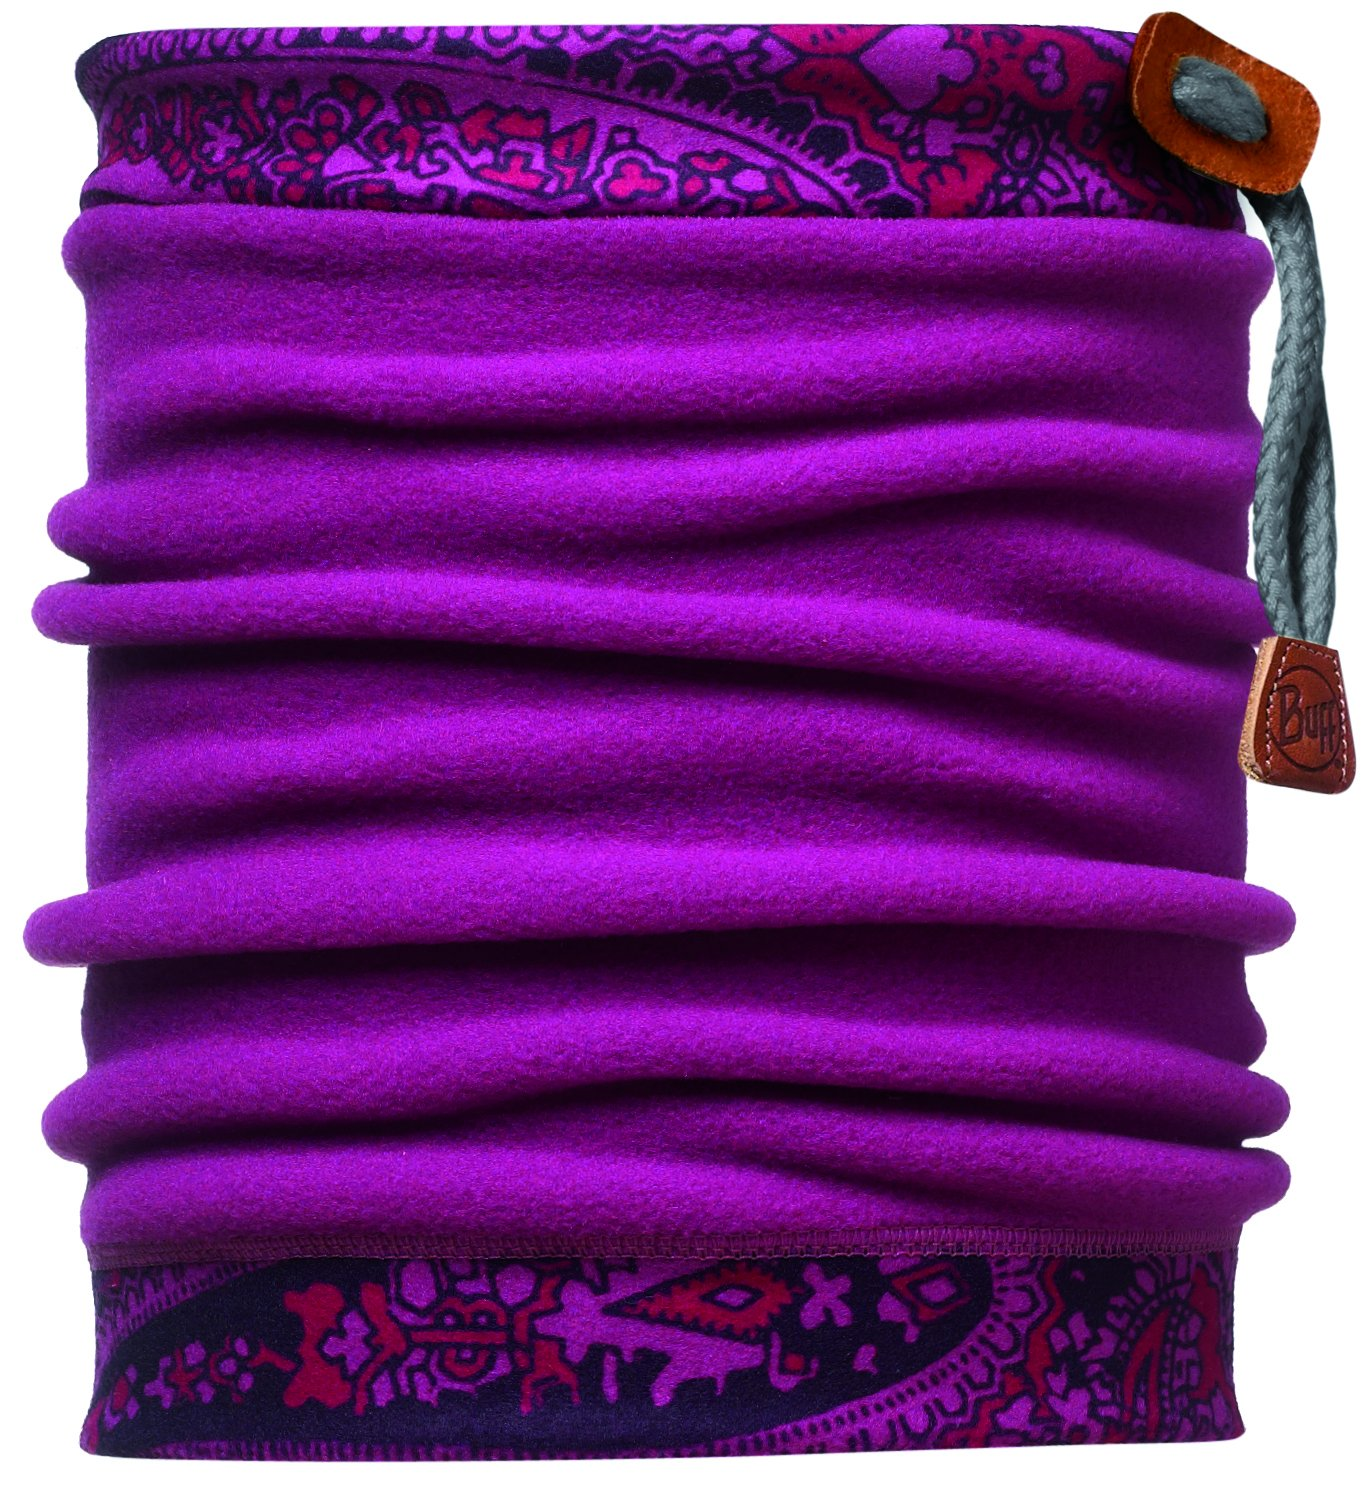 Original Buff Polar Tubular, Unisex adulto, Multicolor (Tamil / Mardi Grape), Única